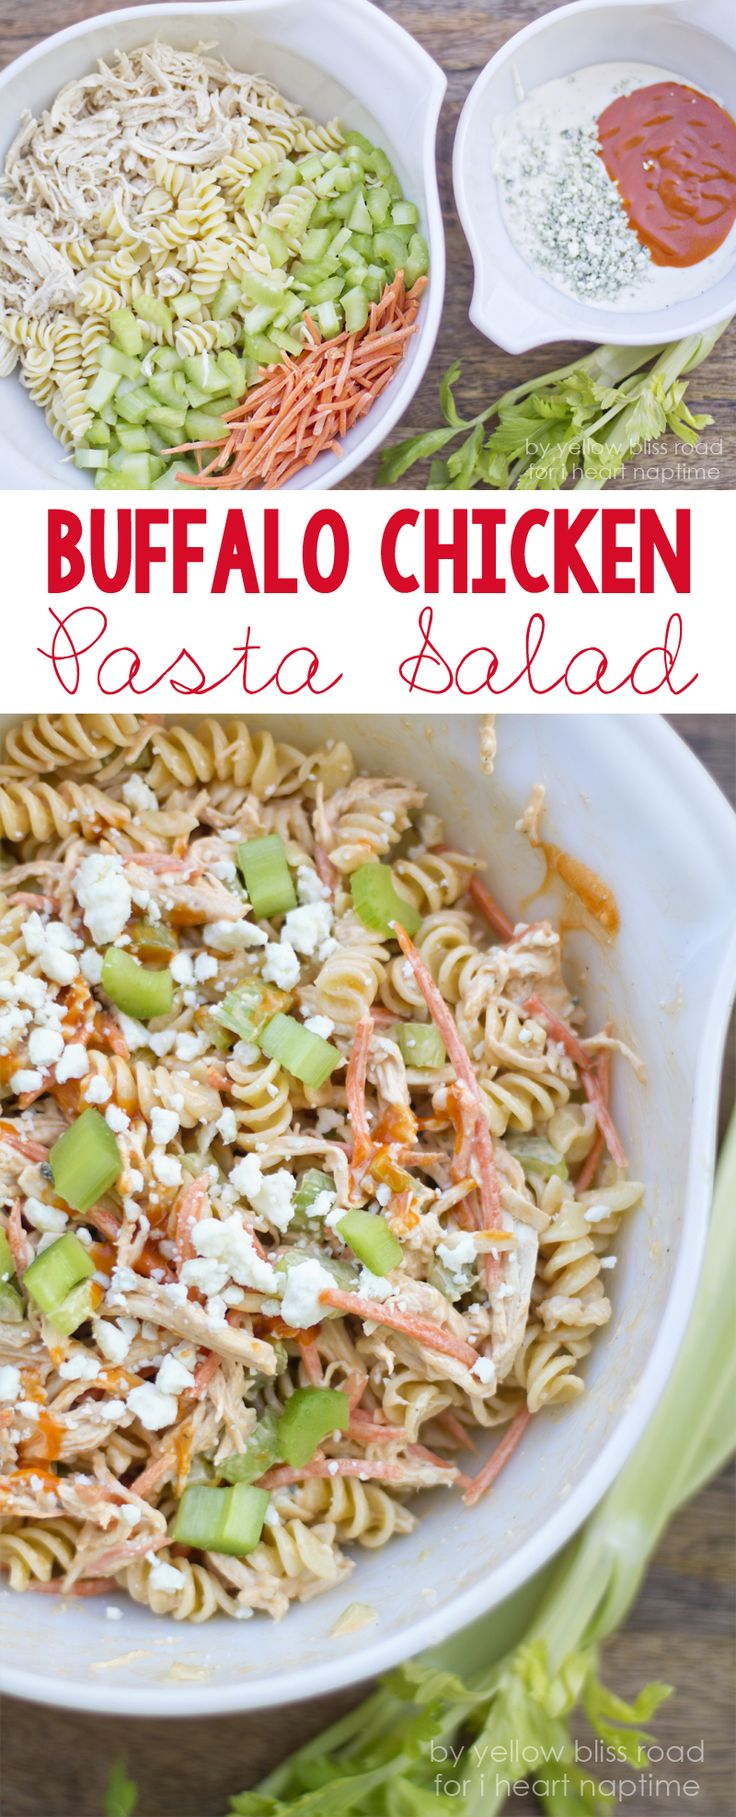 Buffalo Chicken Pasta Salad Recipe -perfect for summer BBQ's!